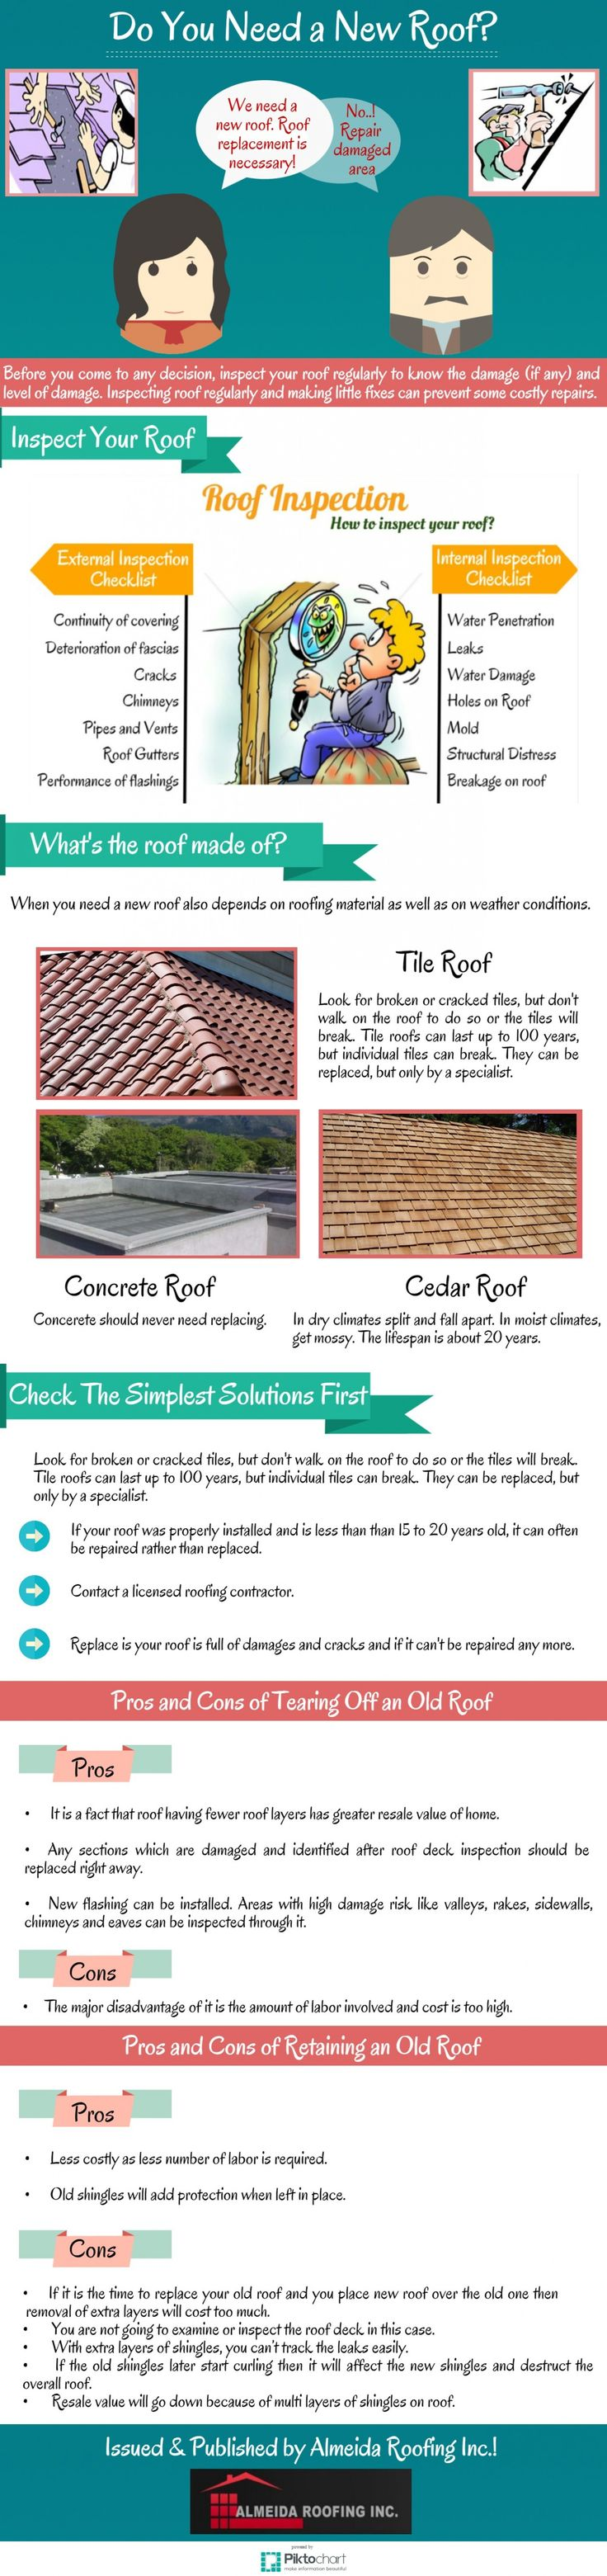 Do You Need New #Roof ?? Check This Infographic For Answers. #PhoenixRoofers